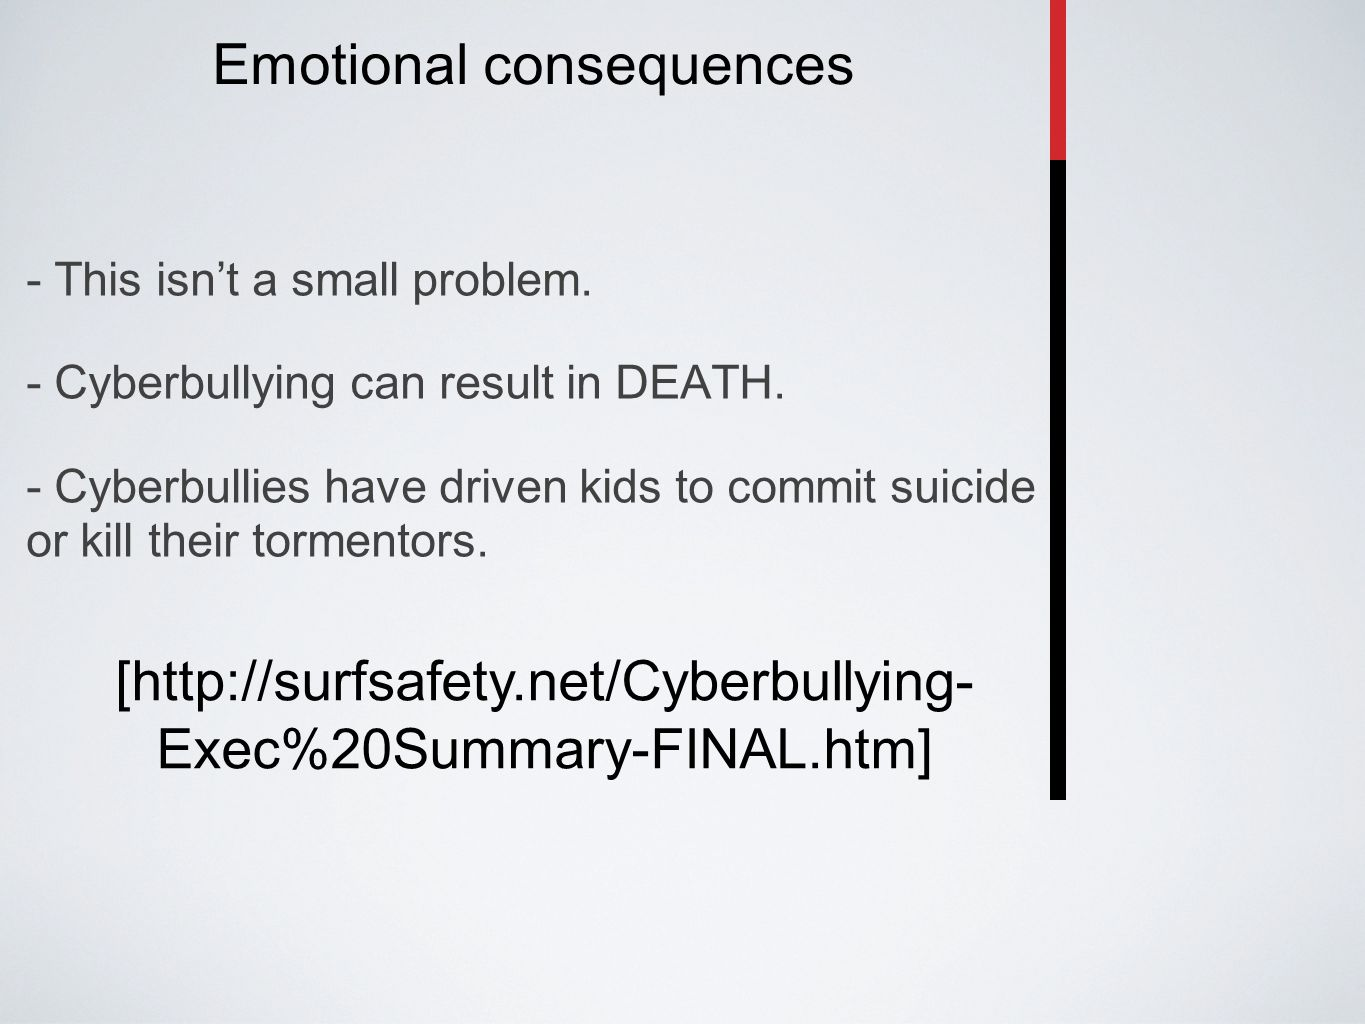 Emotional consequences - This isn't a small problem.